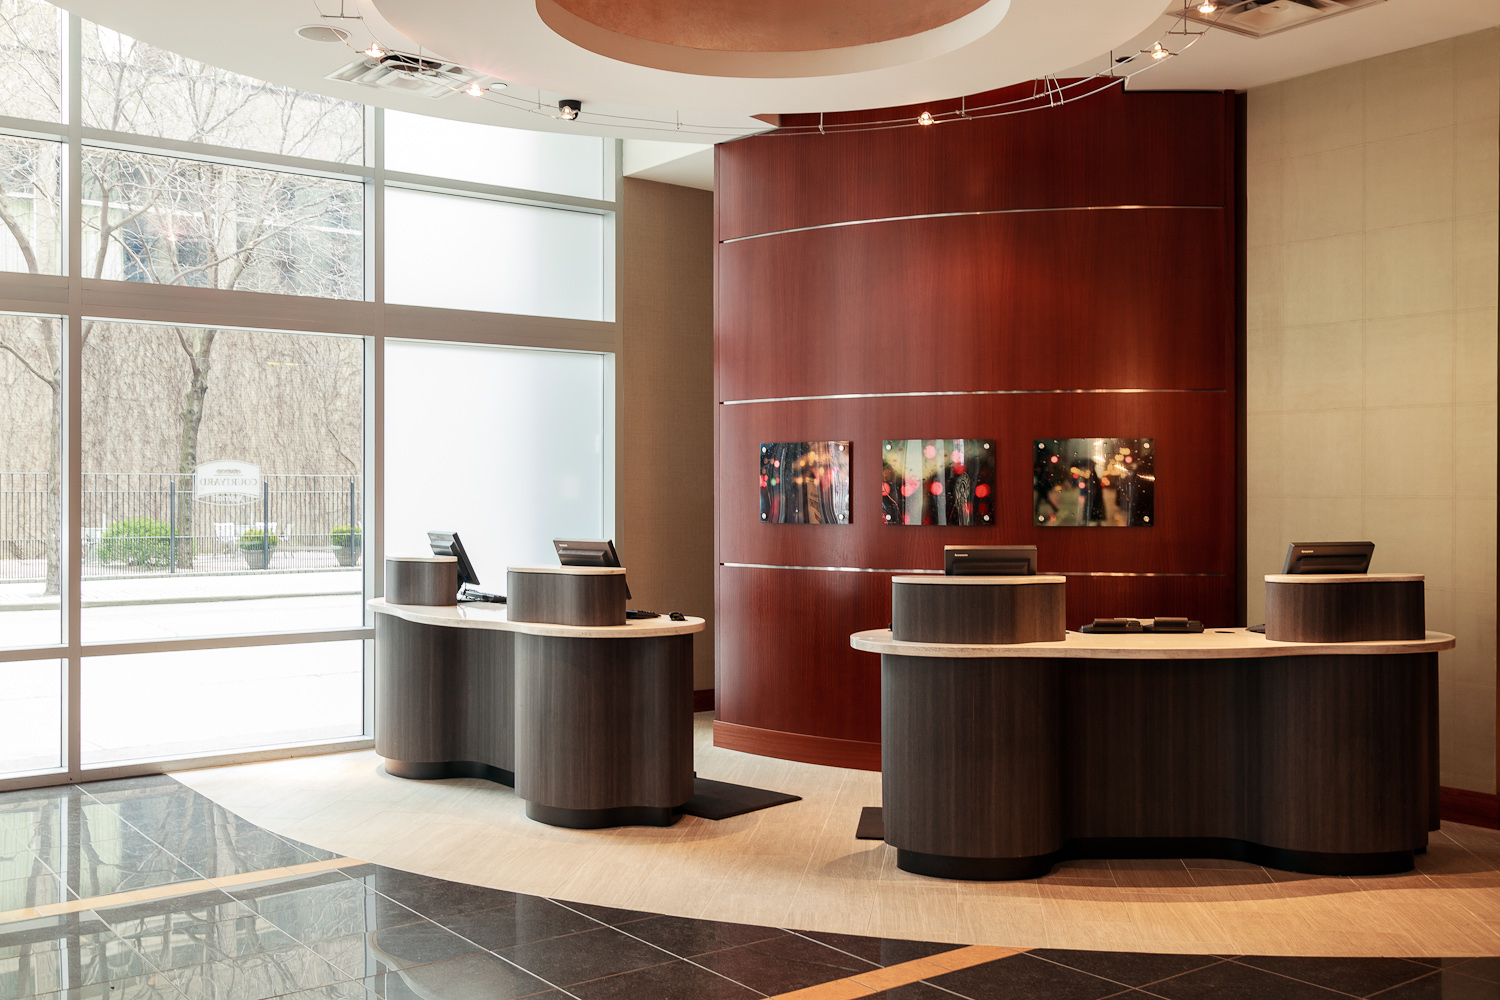 Courtyard by Marriott Chicago Downtown/Magnificent Mile image 1